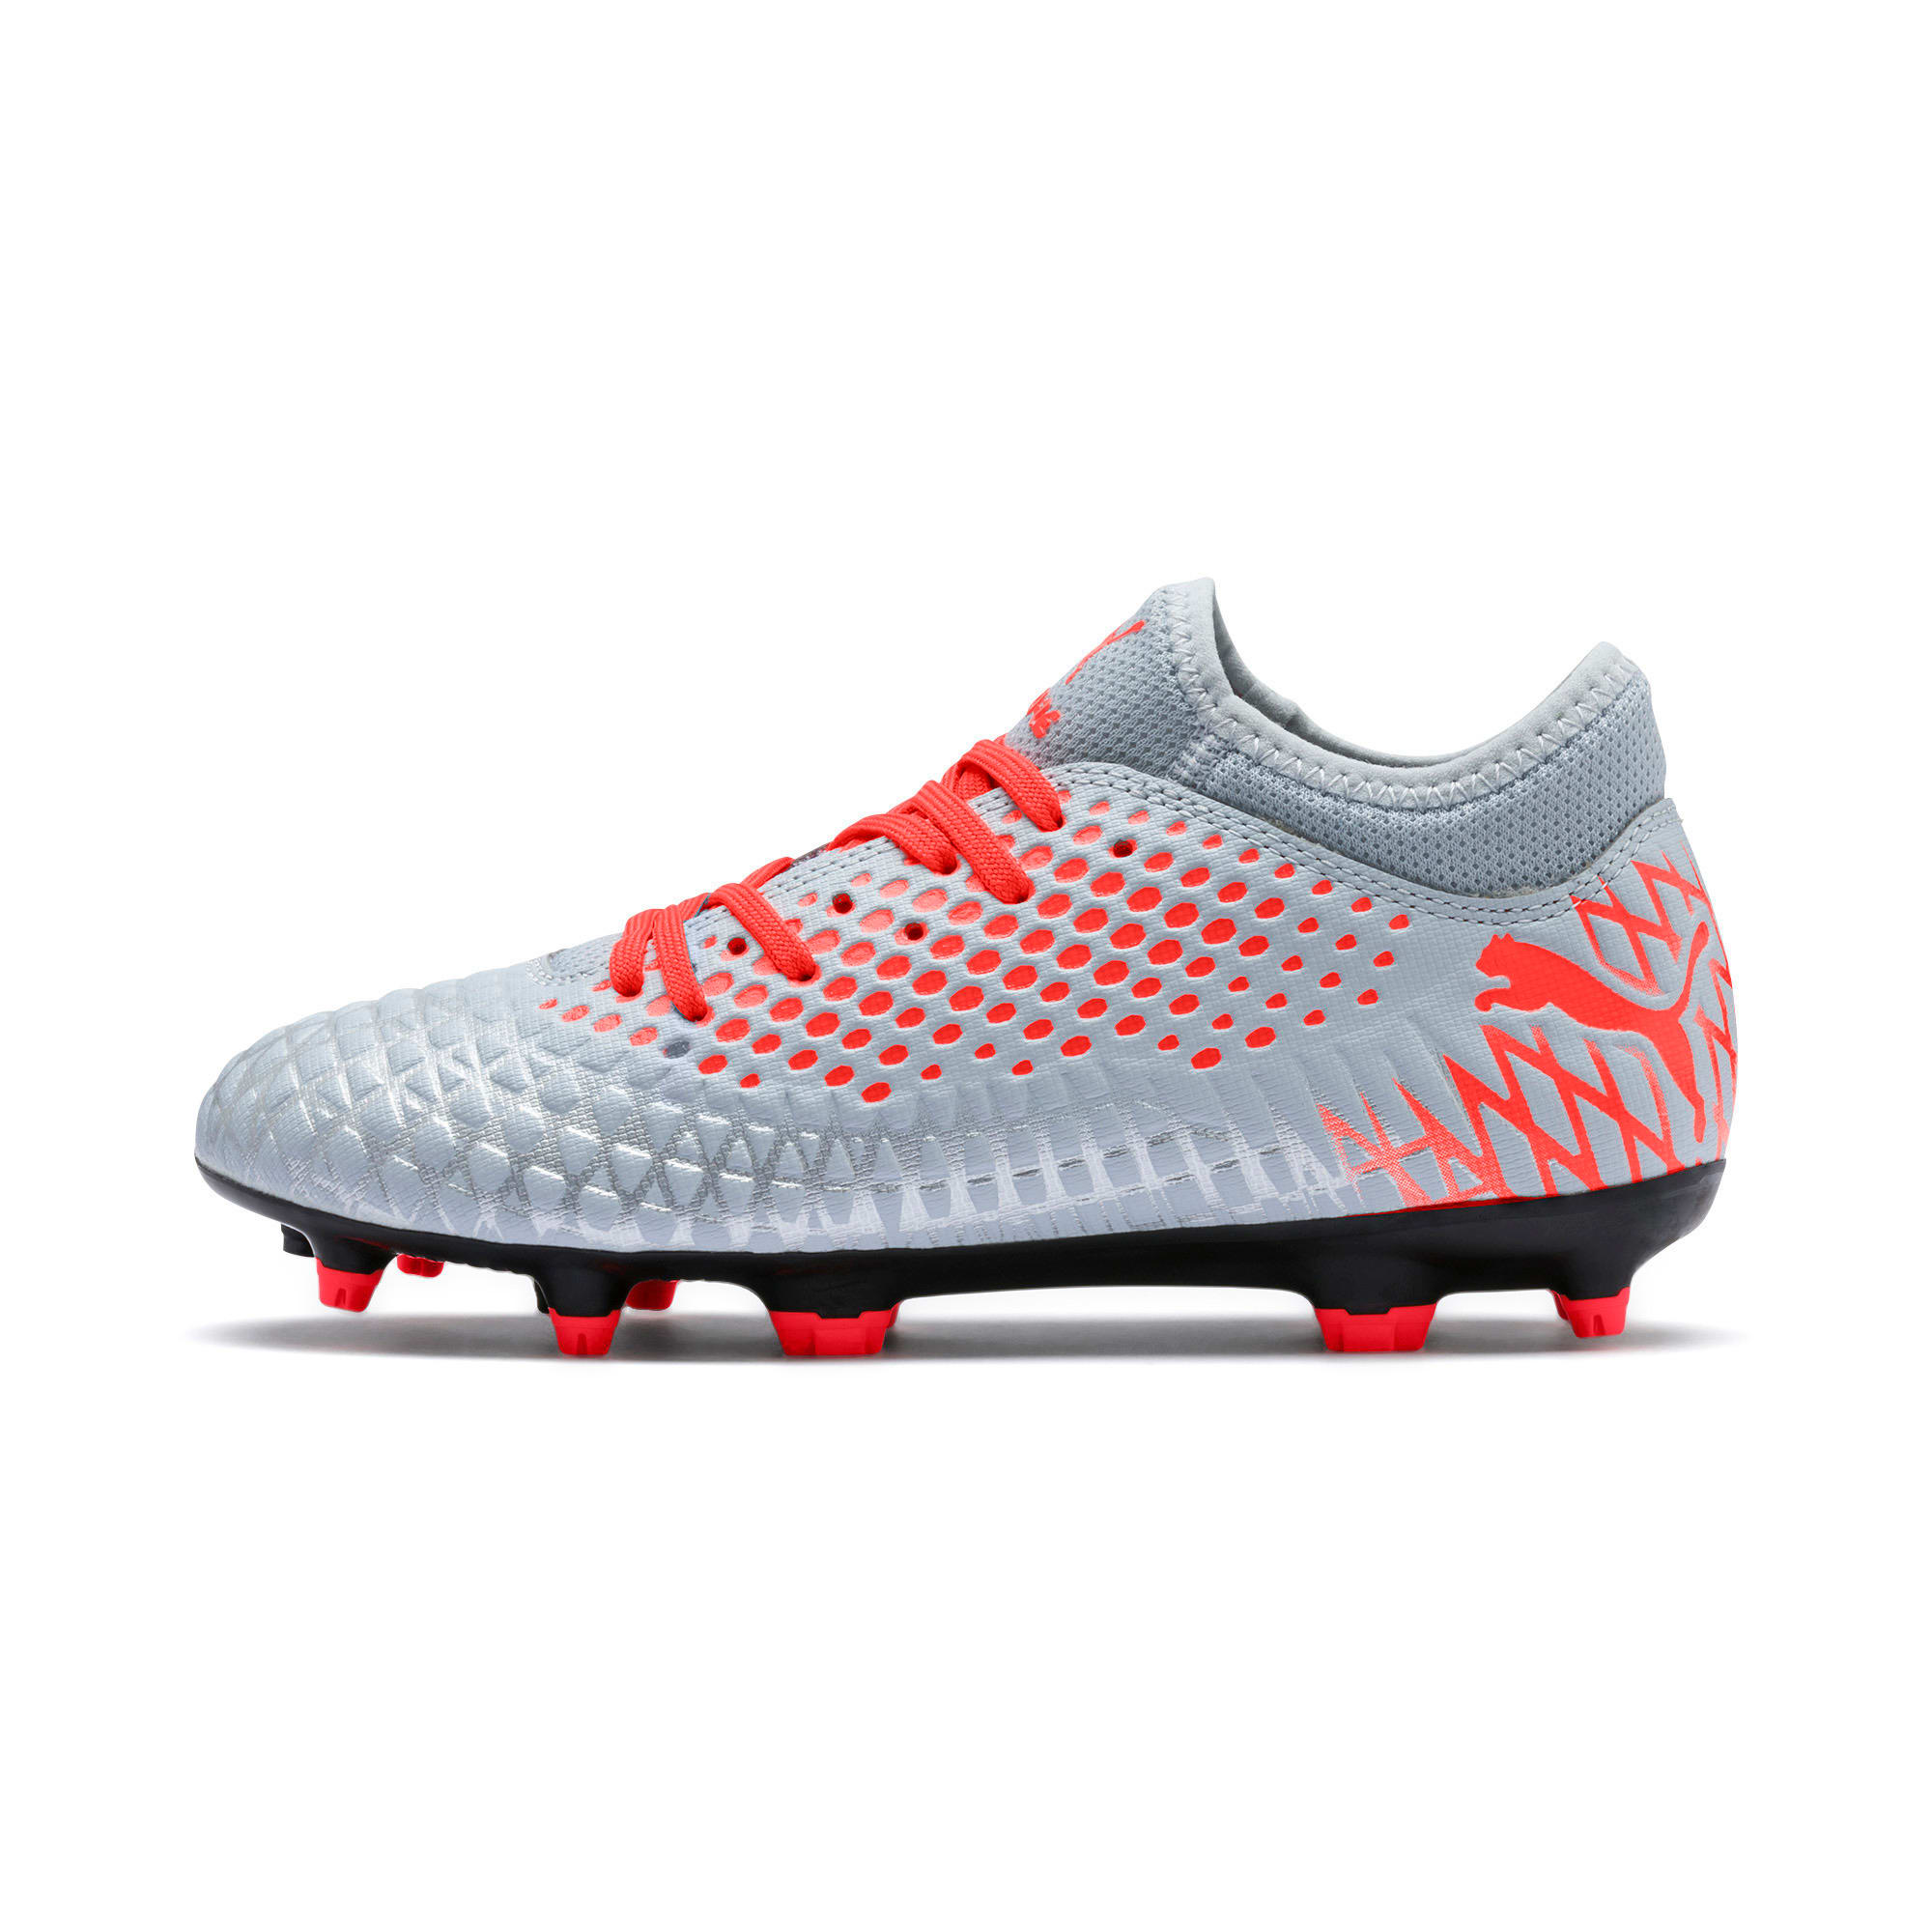 Thumbnail 1 of FUTURE 4.4 Youth Football Boots, Glacial Blue-Nrgy Red, medium